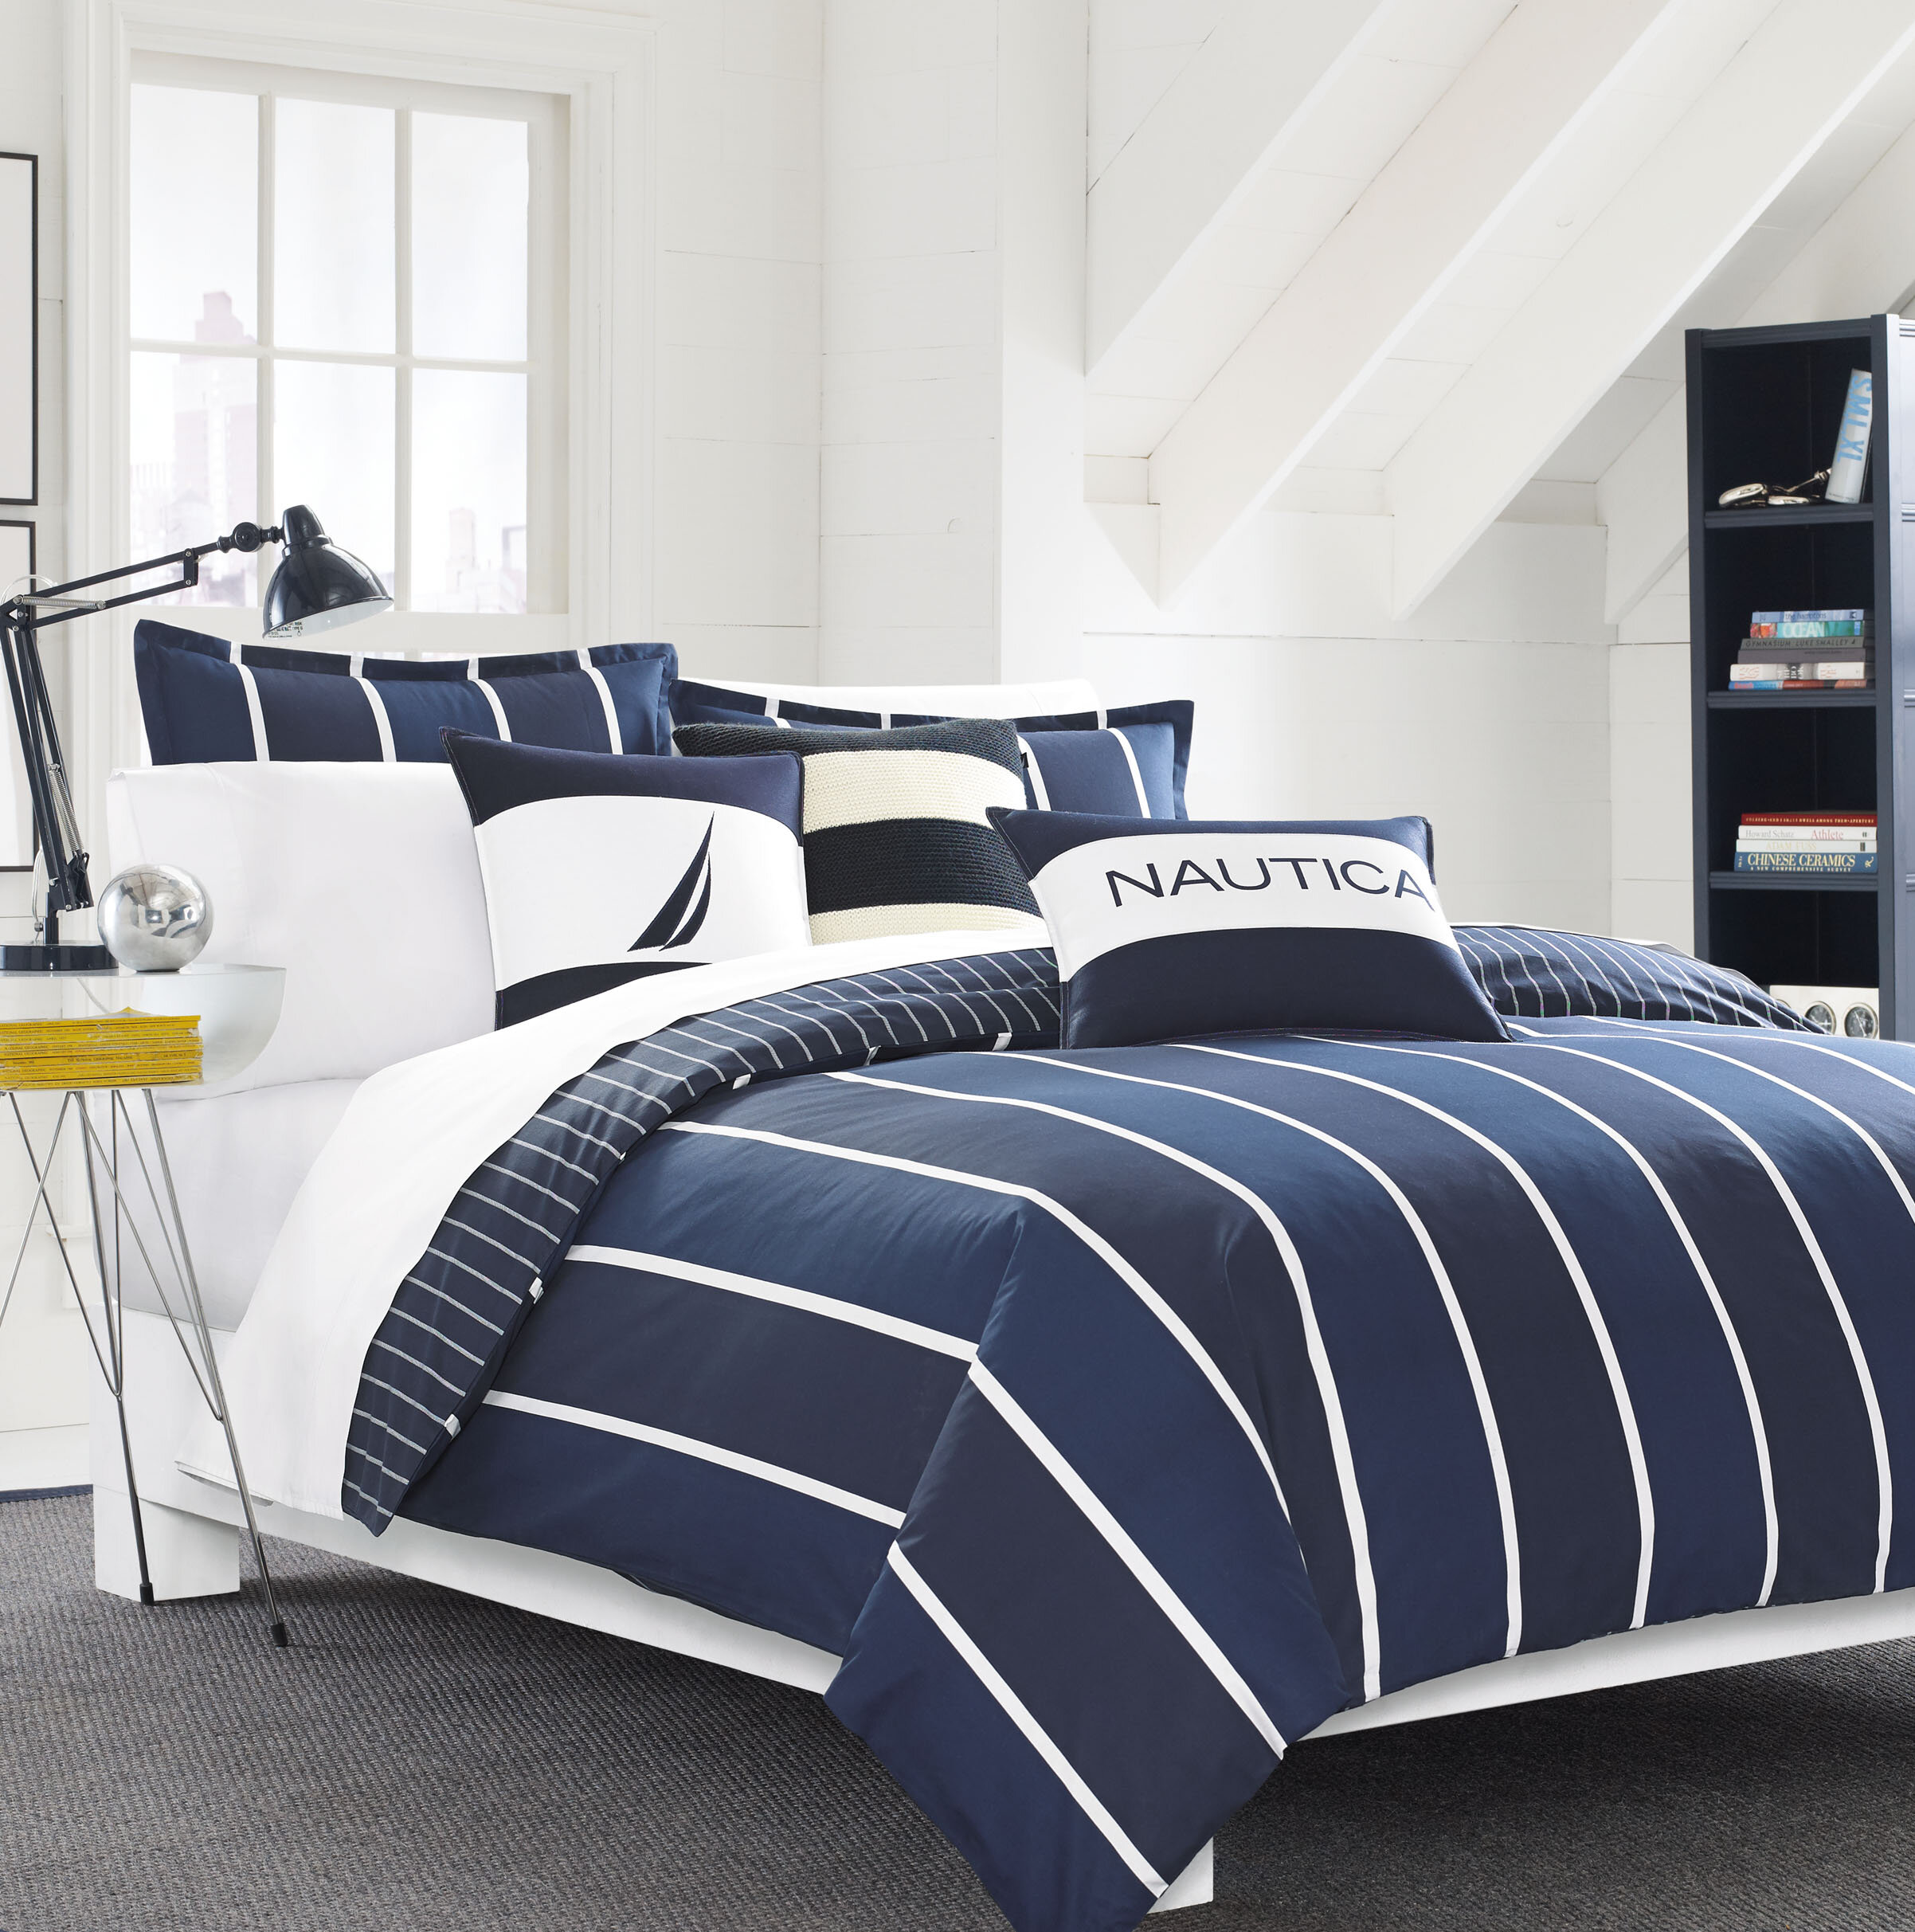 comforter white and shipping king navy fairwater set nautical nautica overstock bedding free acac product today bath sets